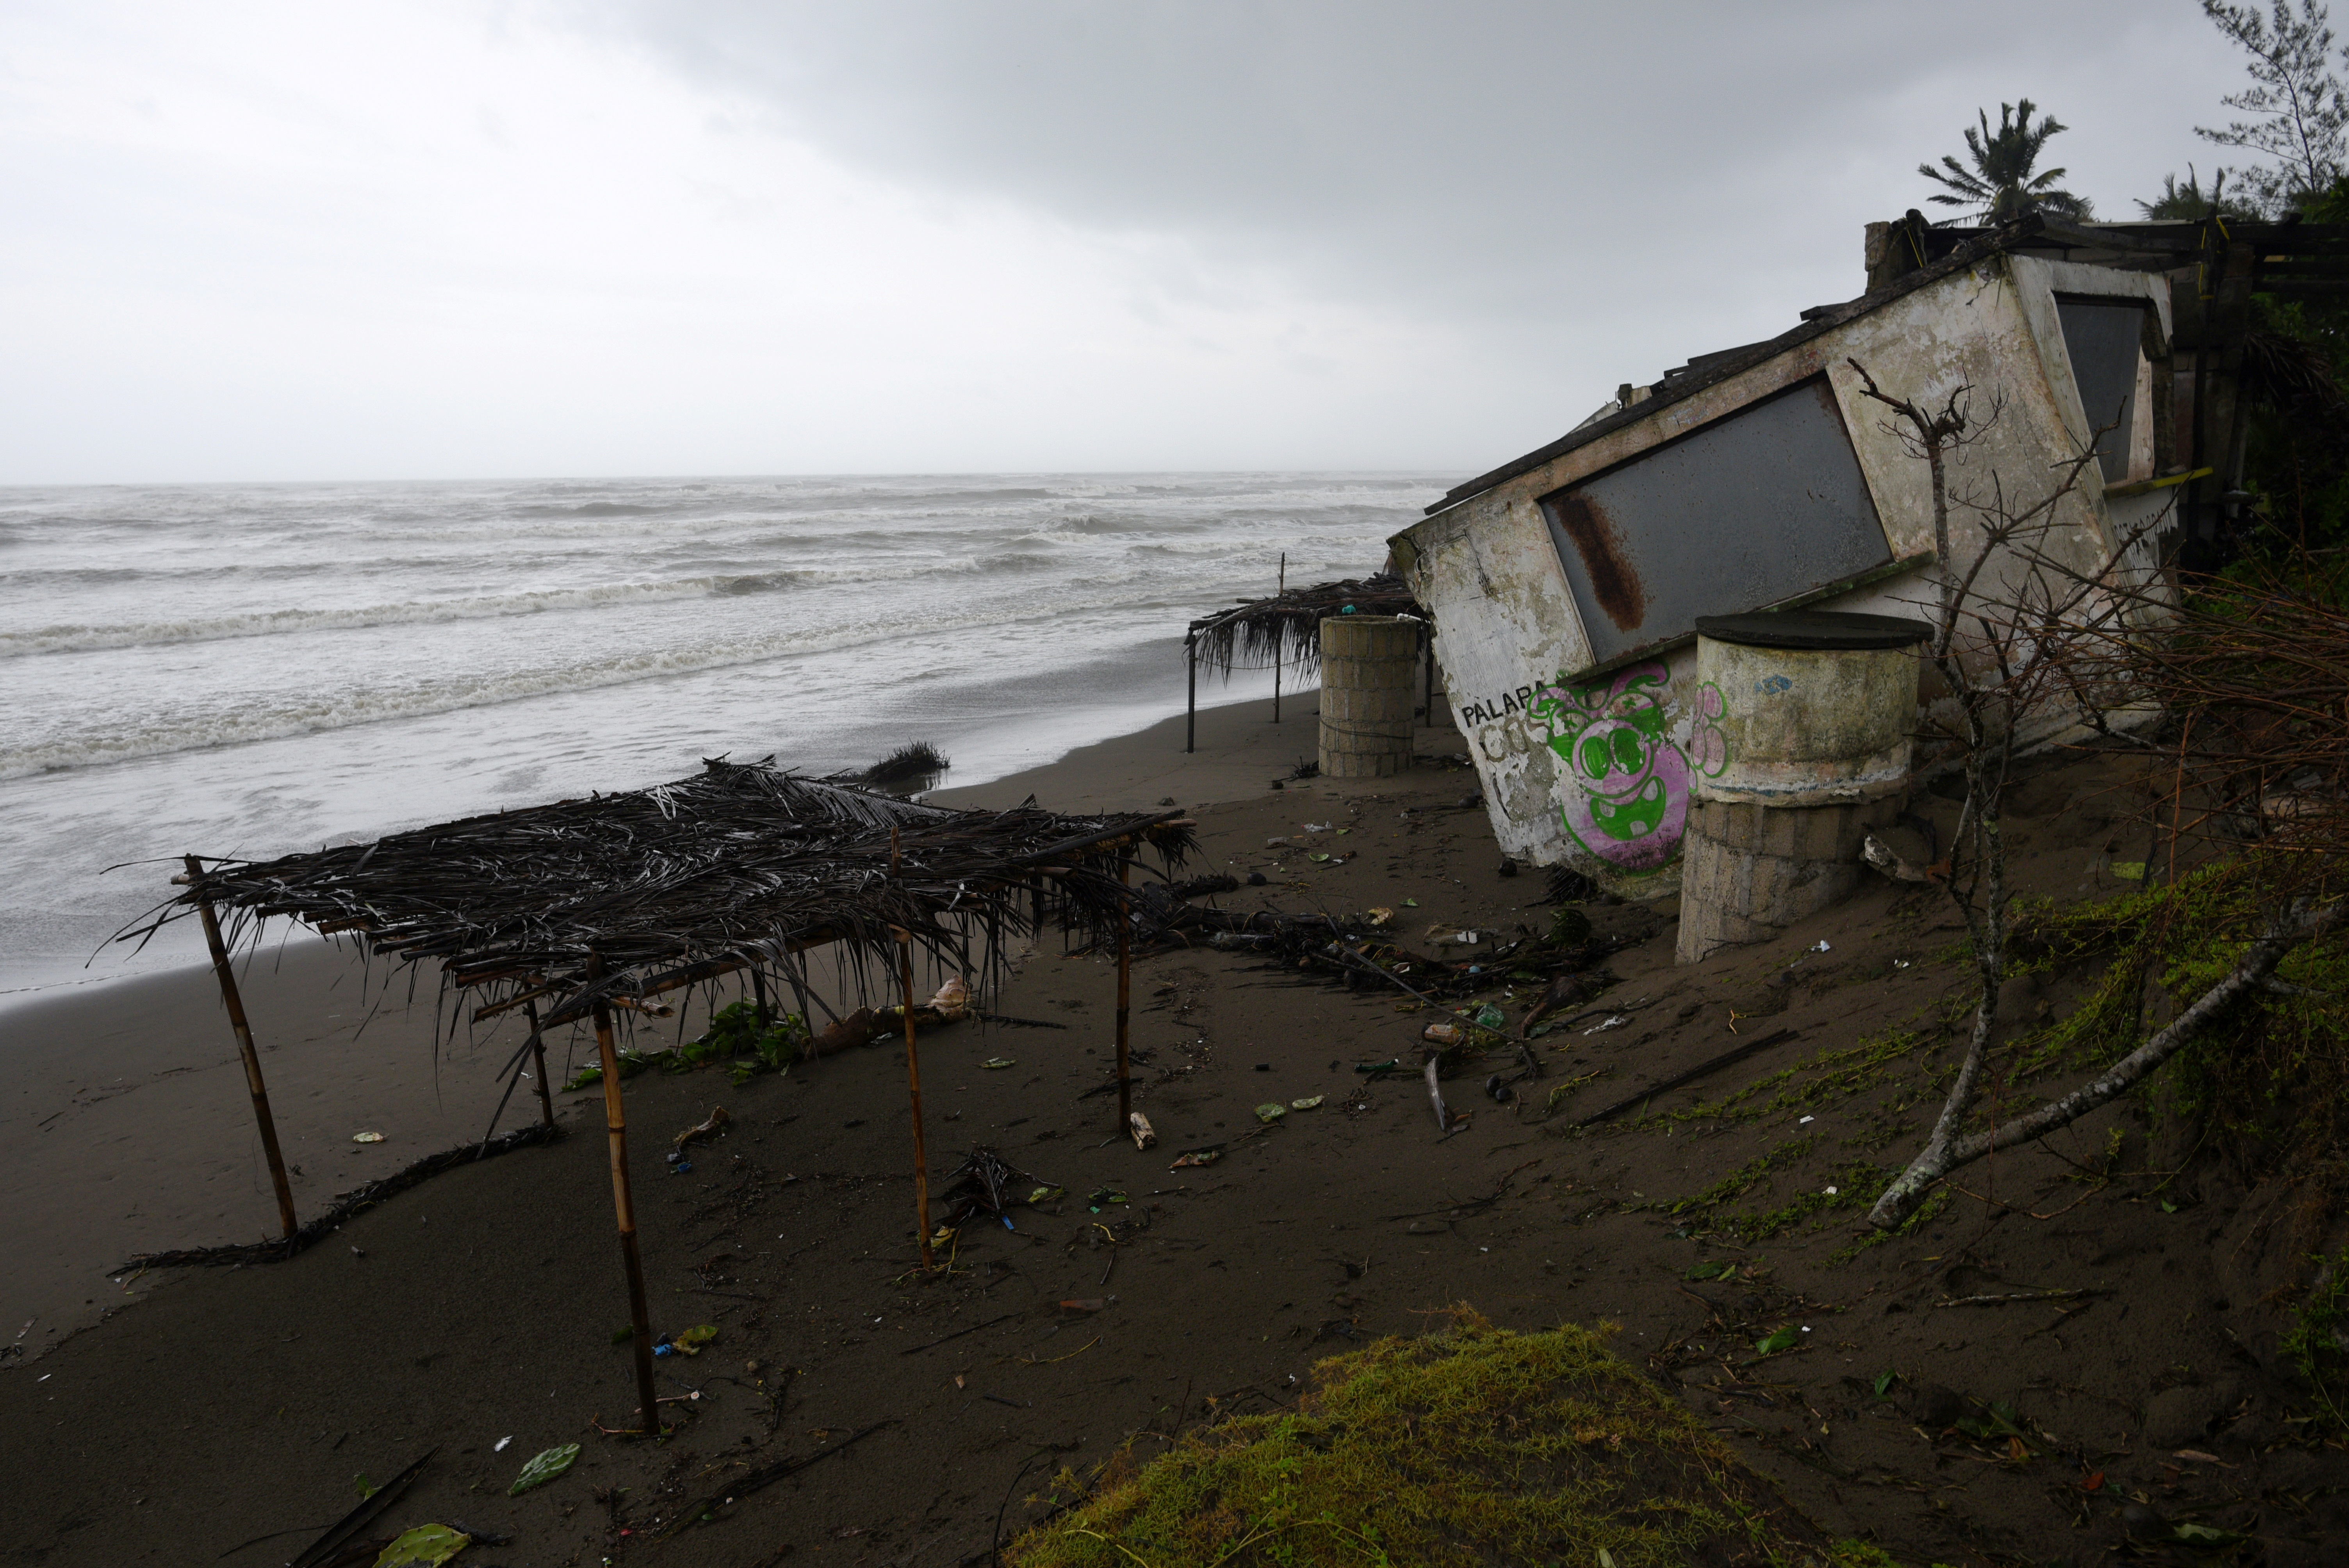 A snack bar which was destroyed when Hurricane Grace slammed into the coast with torrential rains, is seen on the beach, in Costa Esmeralda, near Tecolutla, Mexico August 21, 2021.    REUTERS/Yahir Ceballos